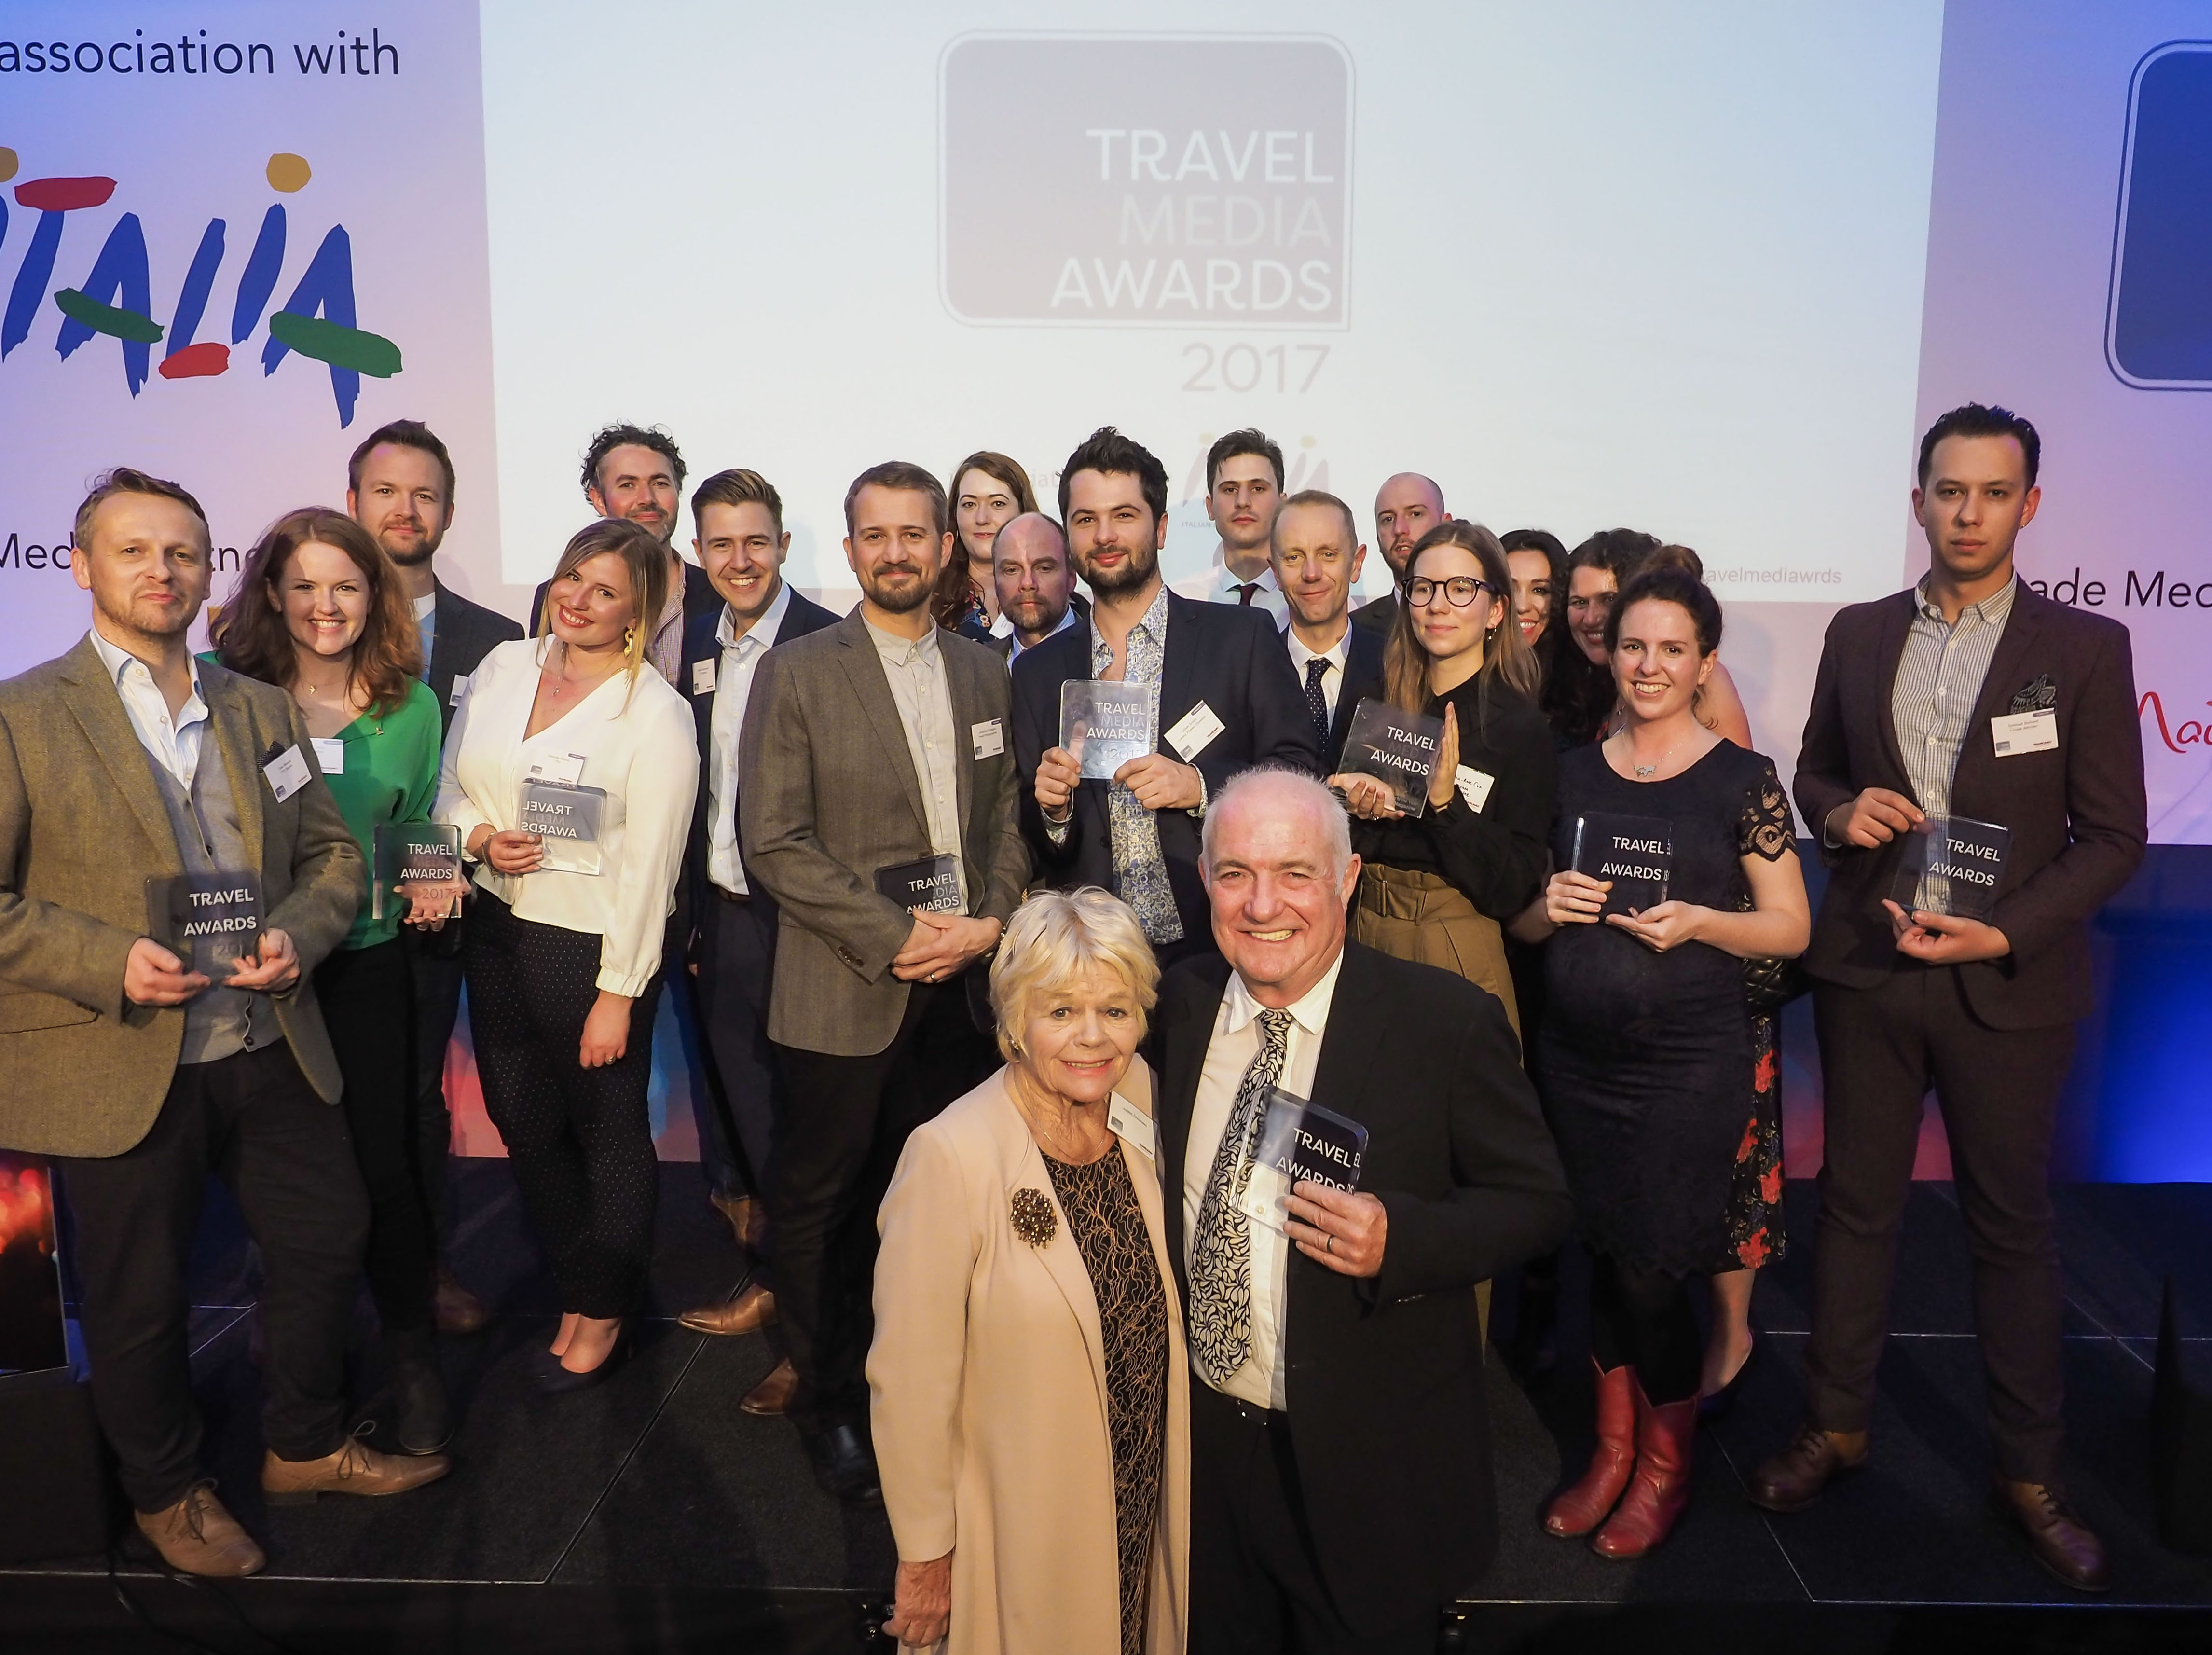 The winners of the Travel Media Awards 2017, along with Special Contribution Award recipient, Rick Stein OBE, and Judith Chalmers OBE